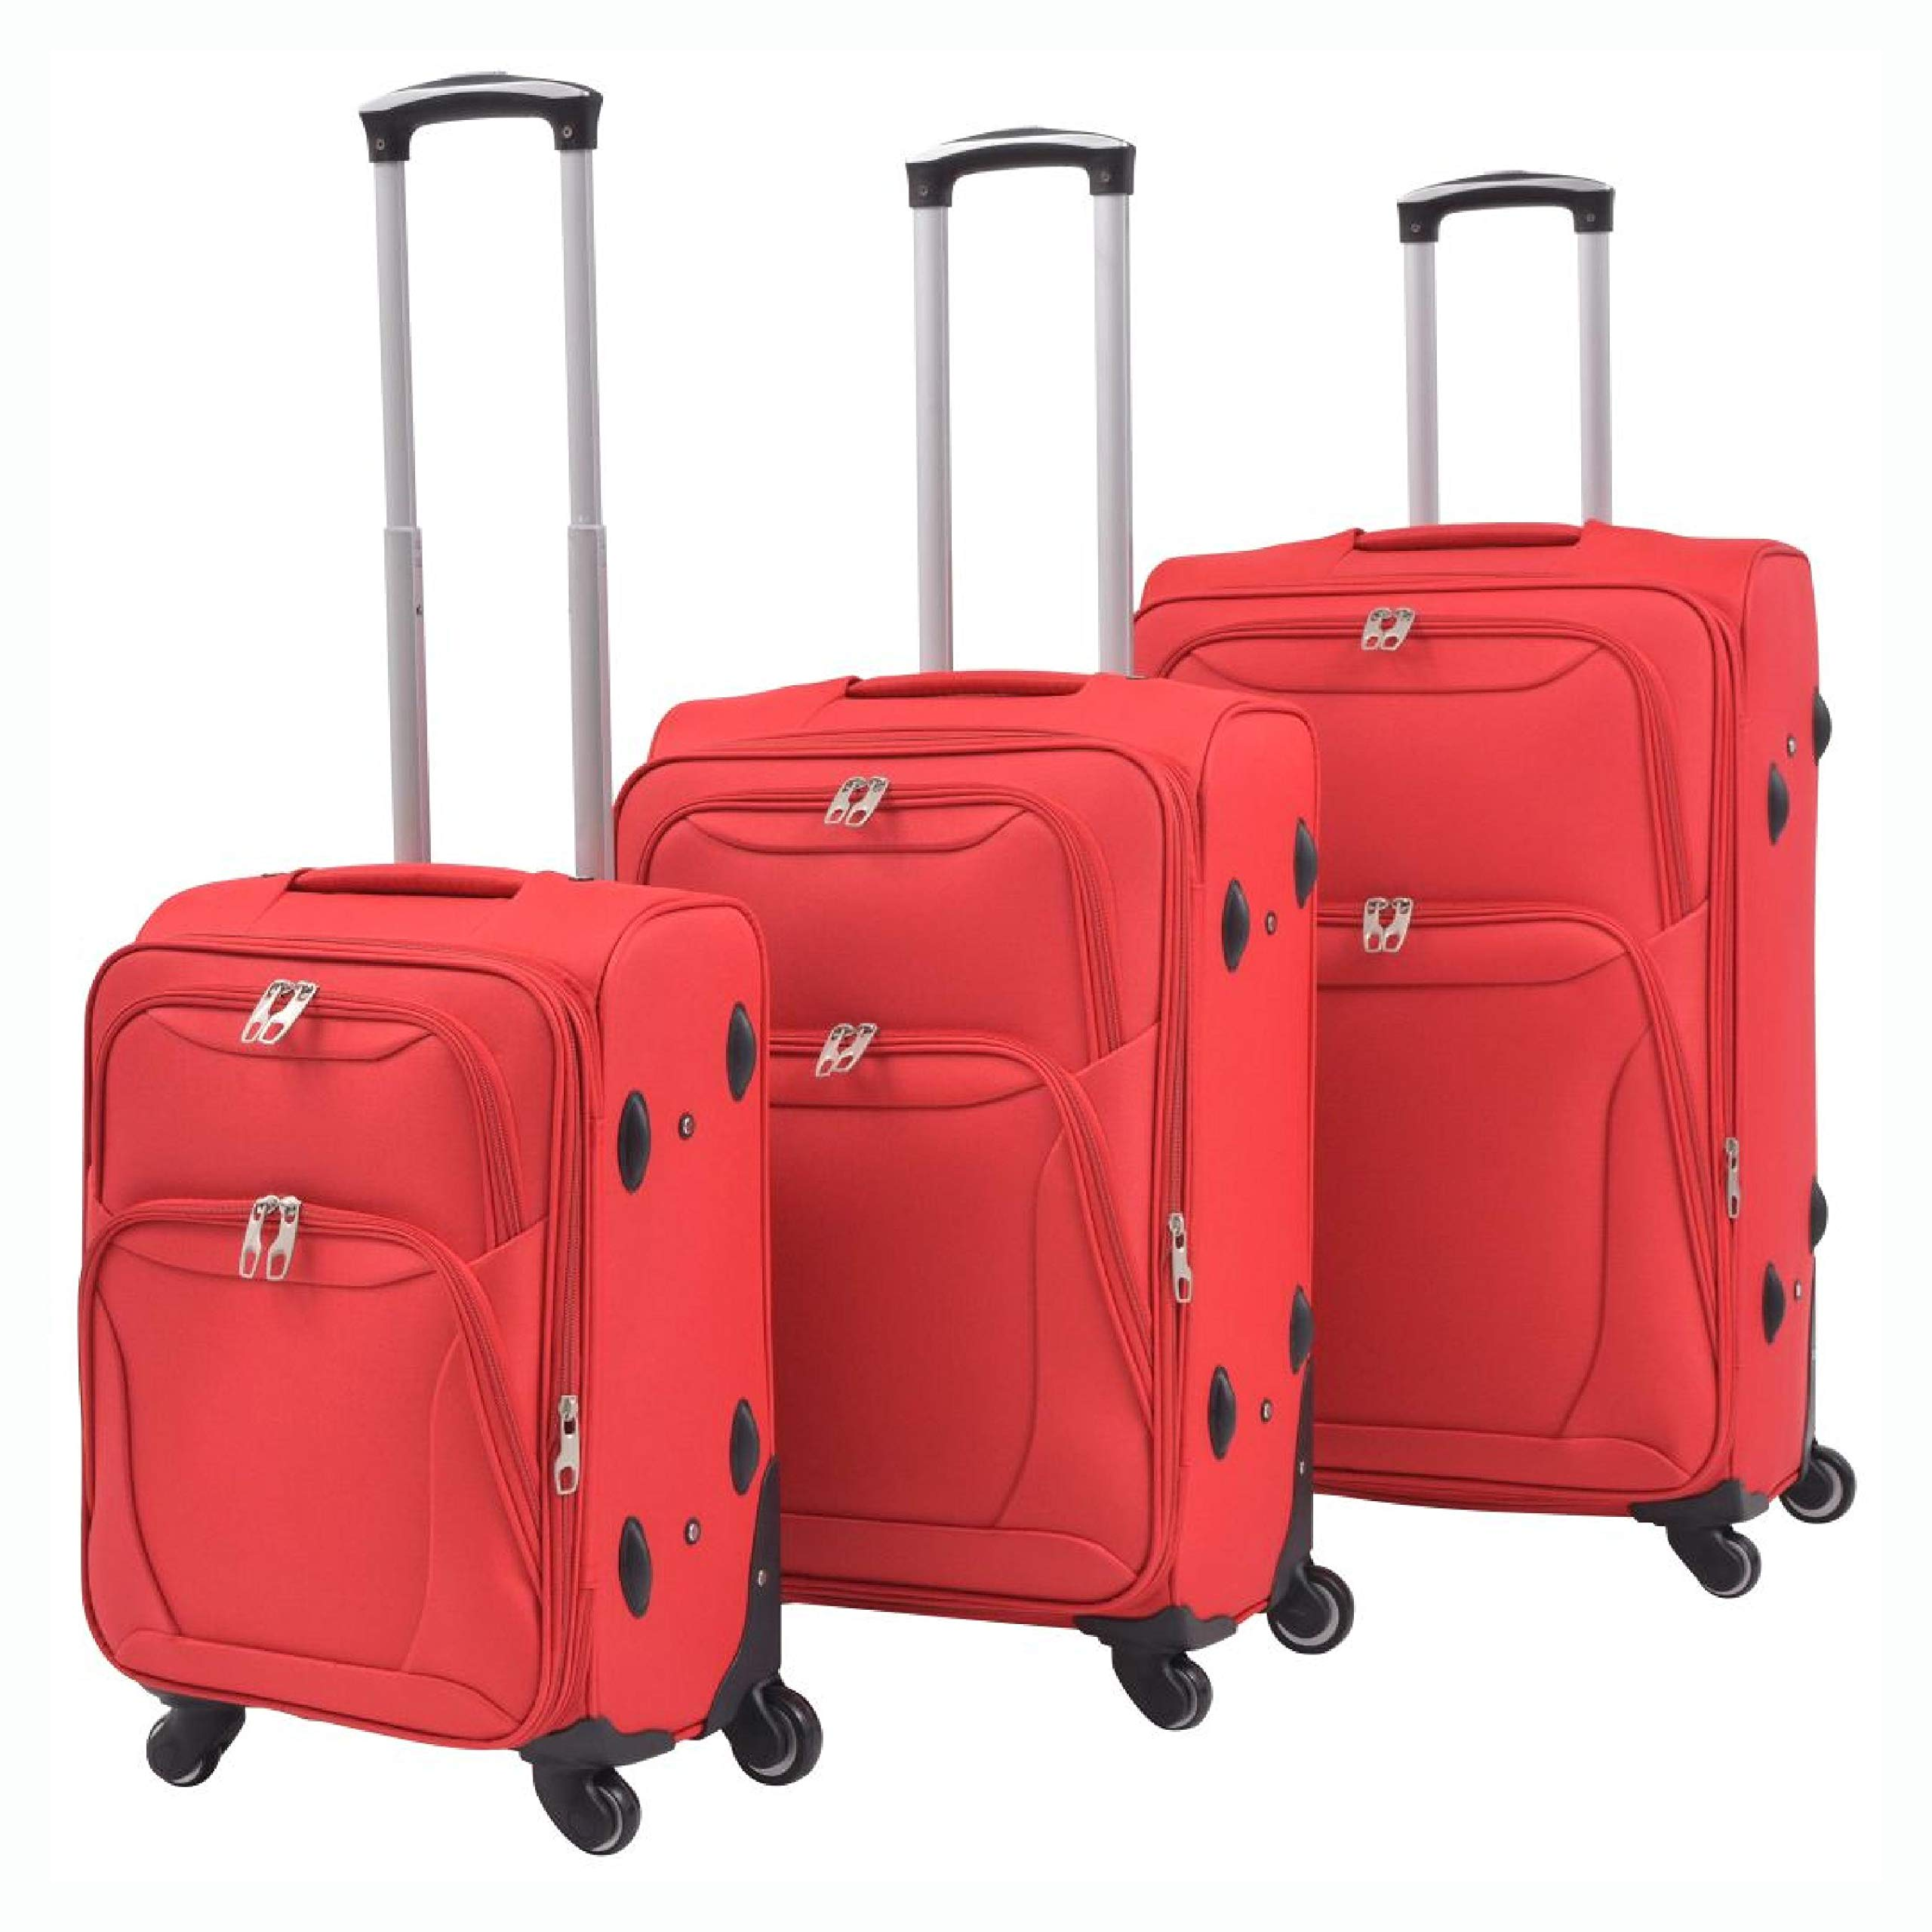 HomyDelight Suitcase, 3 Piece Soft Case Trolley Set Red by HomyDelight